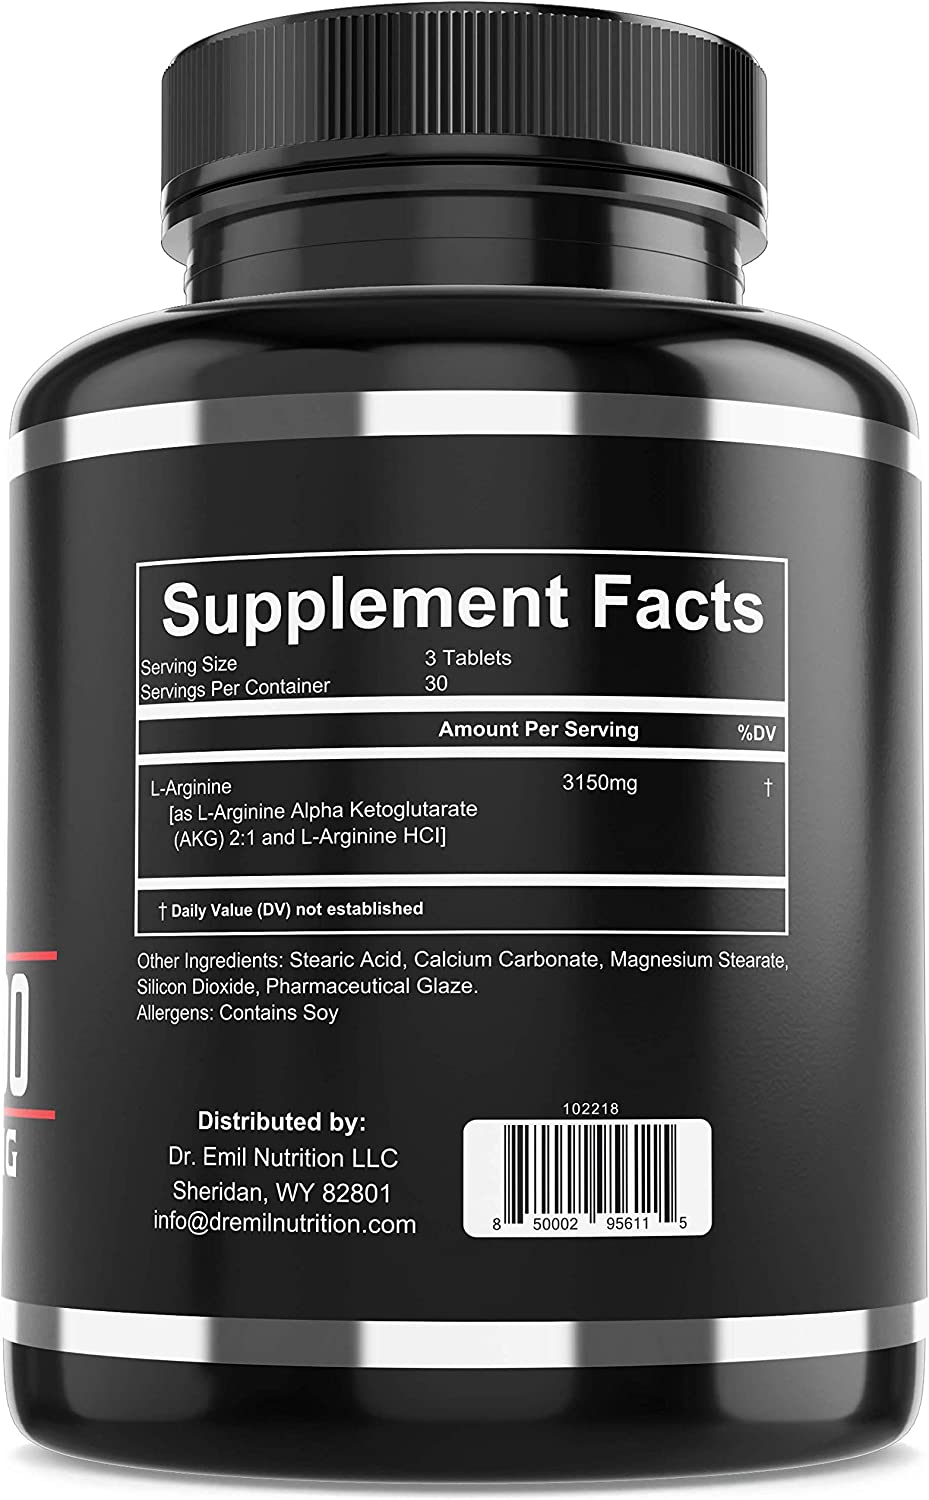 Dr. Emil – L Arginine 3150mg Highest Capsule Dose – Nitric Oxide Supplement for Muscle Growth, Vascularity, Endurance and Heart Health AAKG and HCL – 90 Tablets